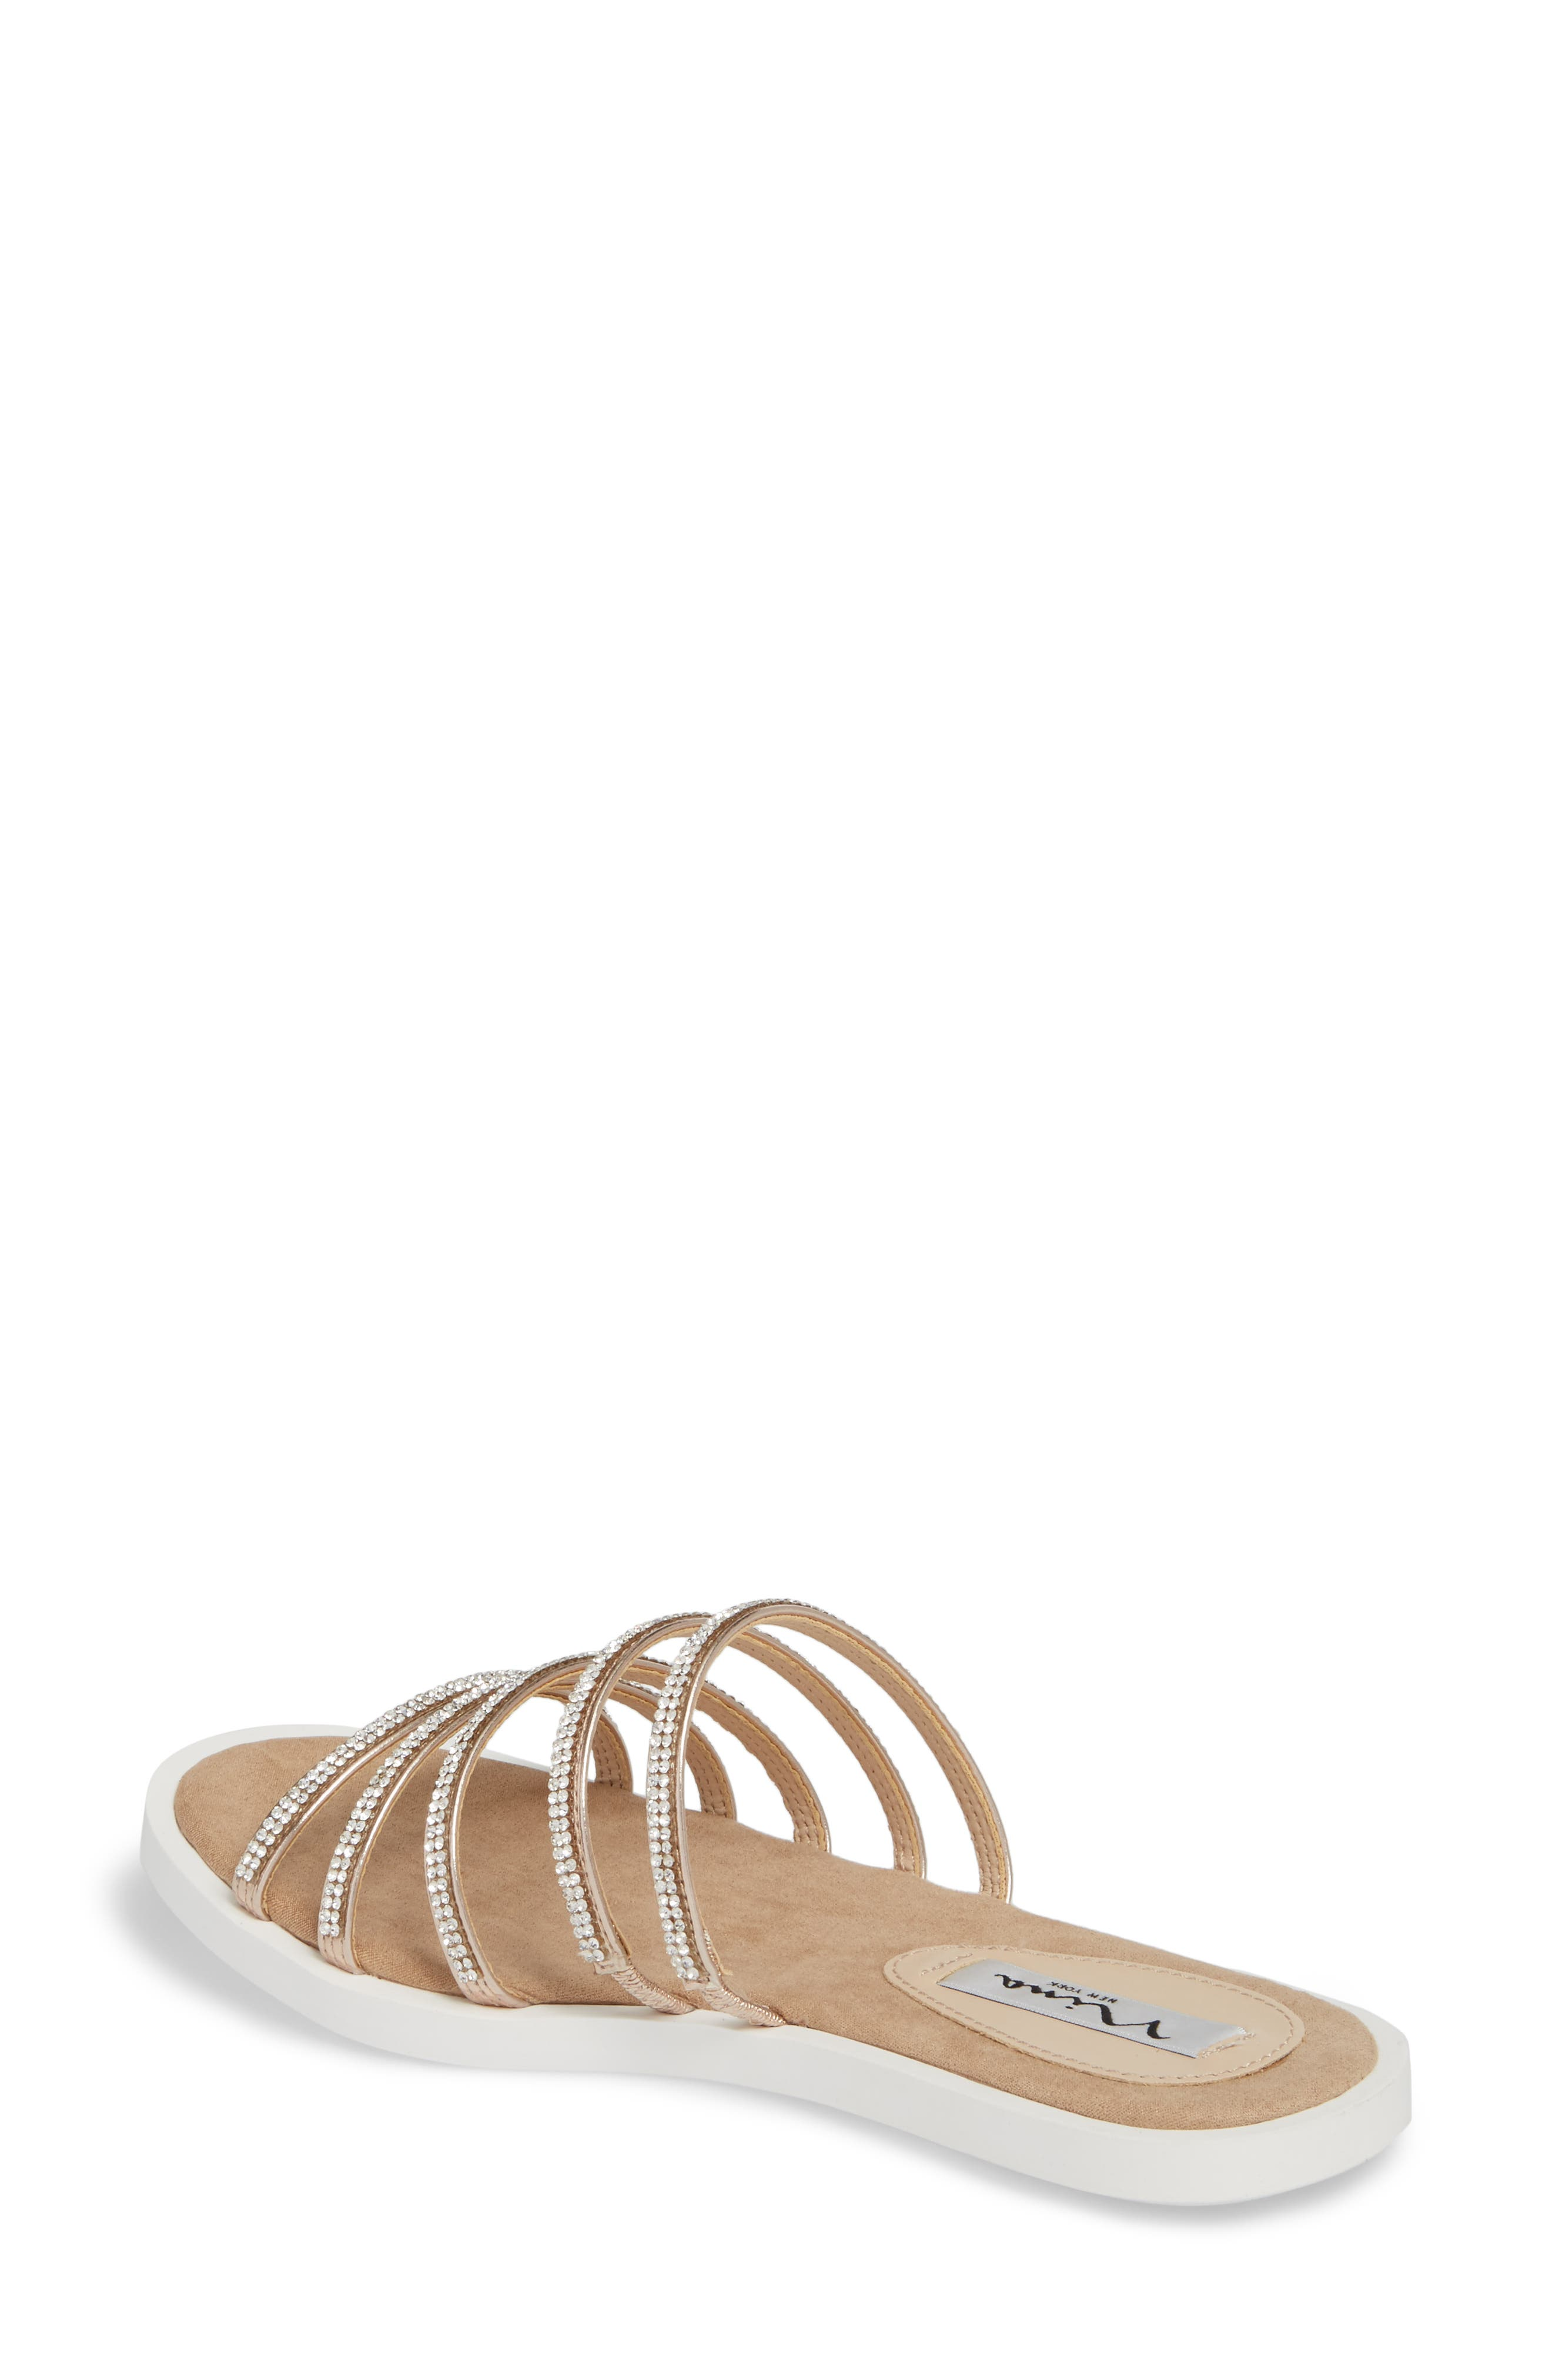 Sabrina Sandal,                             Alternate thumbnail 2, color,                             Rose Gold Fabric